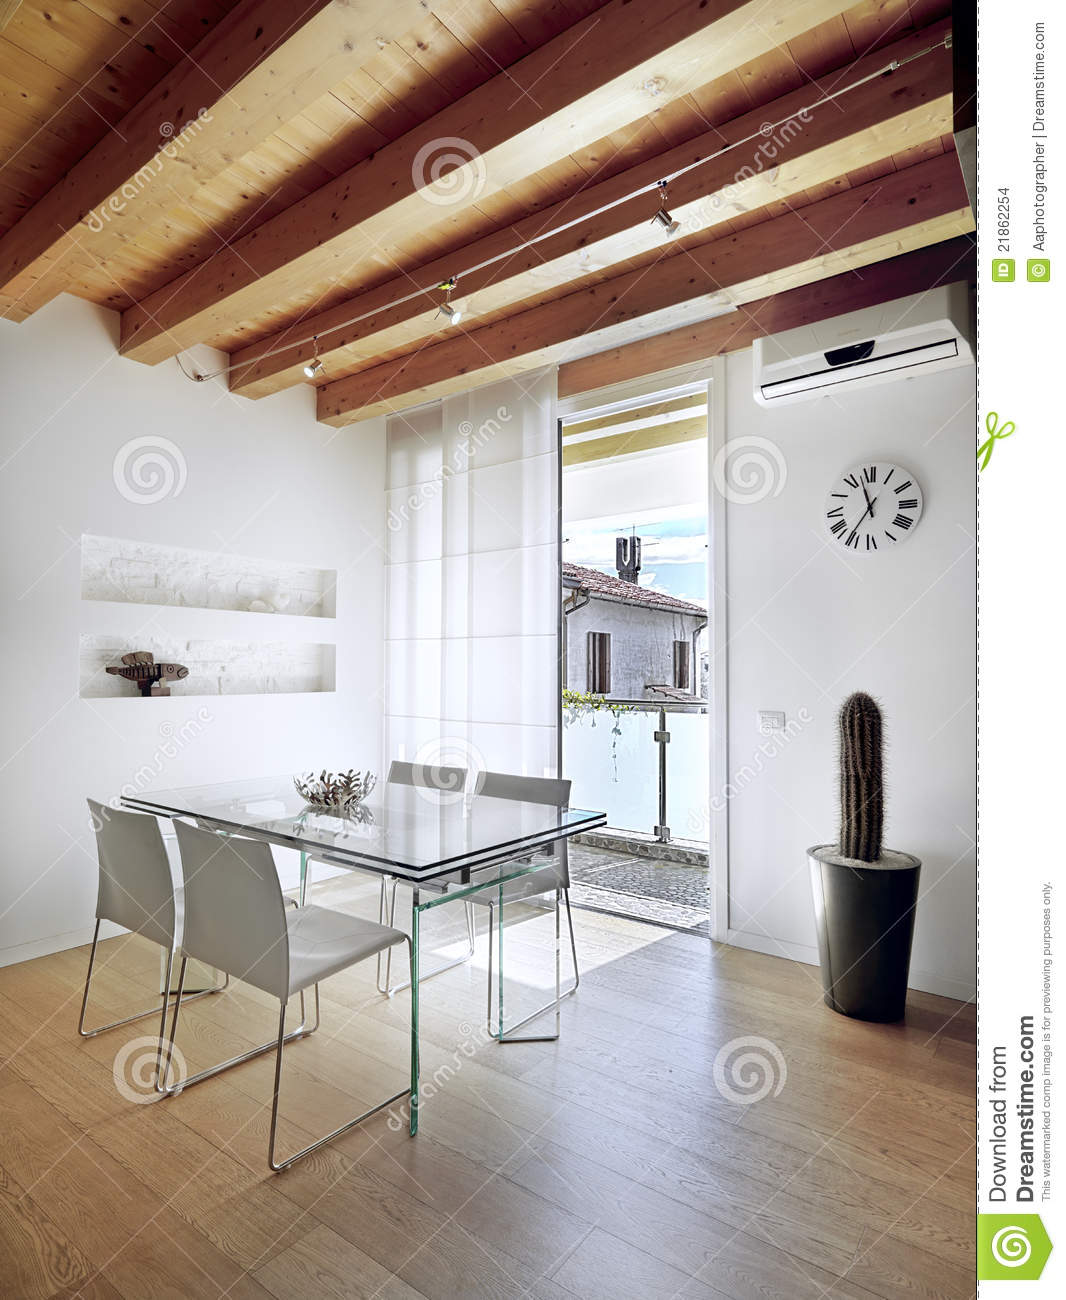 Glass Dining Table In Modern Apartment Stock Photo - Image of home ...